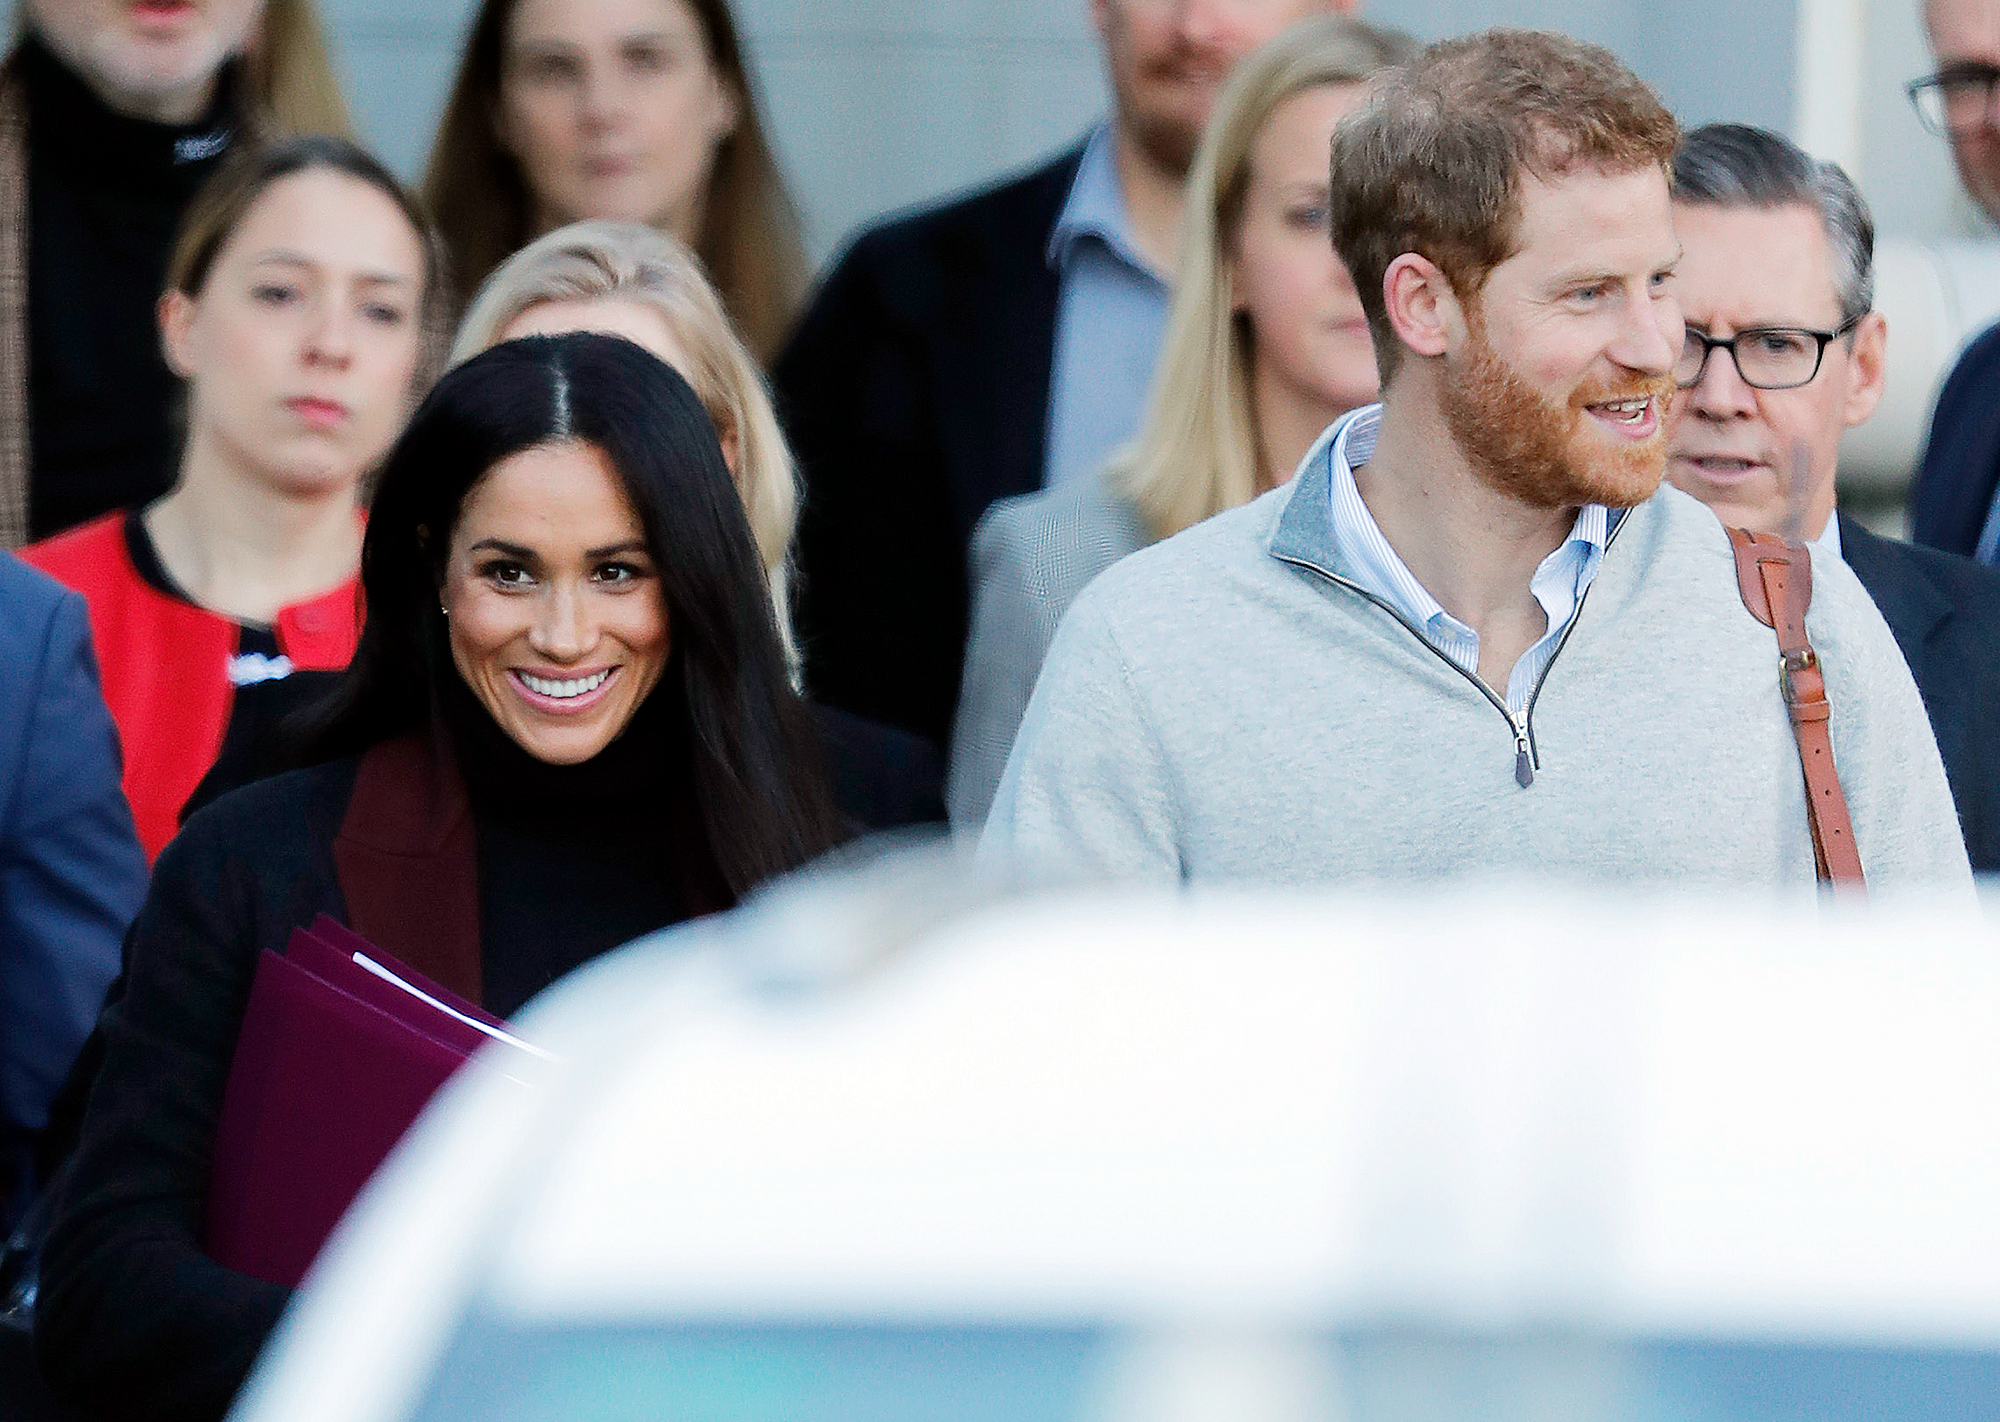 Prince Harry Duchess Meghan Sydney Arrival - The couple are set to climb the Sydney Harbor Bridge on Friday, October 19.